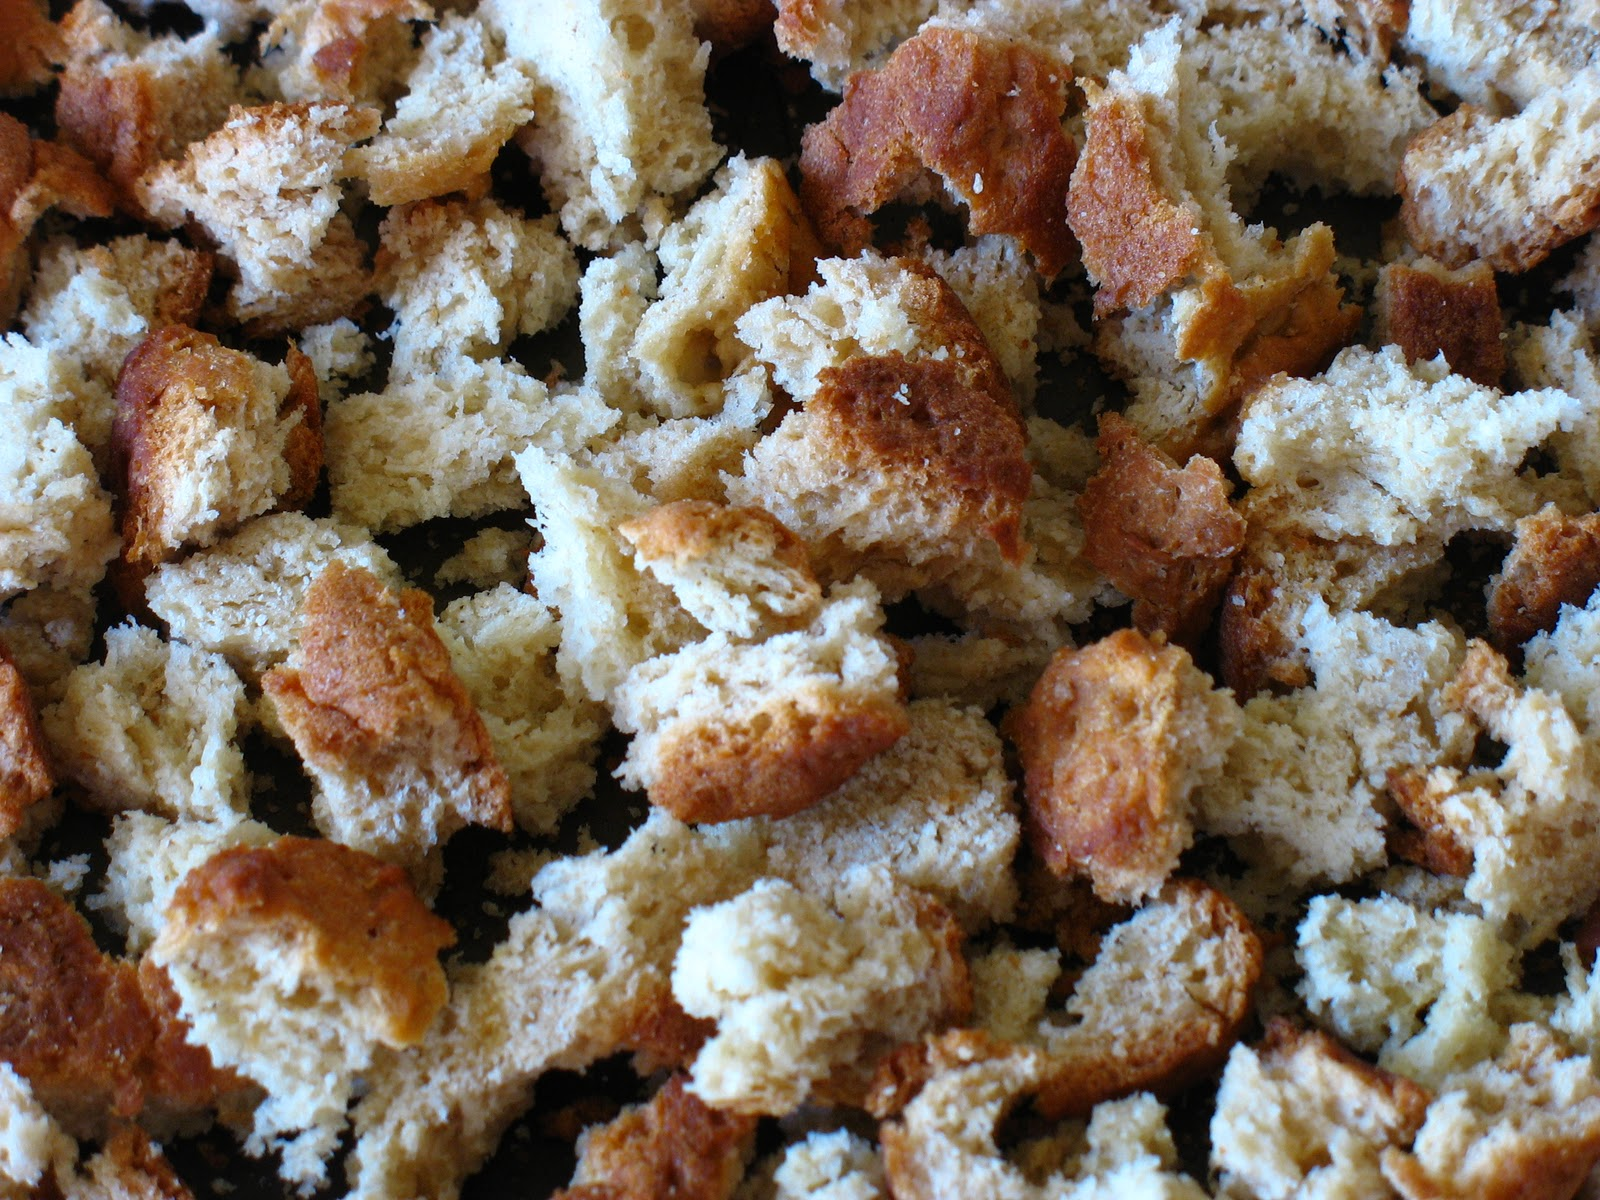 The Gluten Free Spouse: Gluten Free Stove Top Stuffing